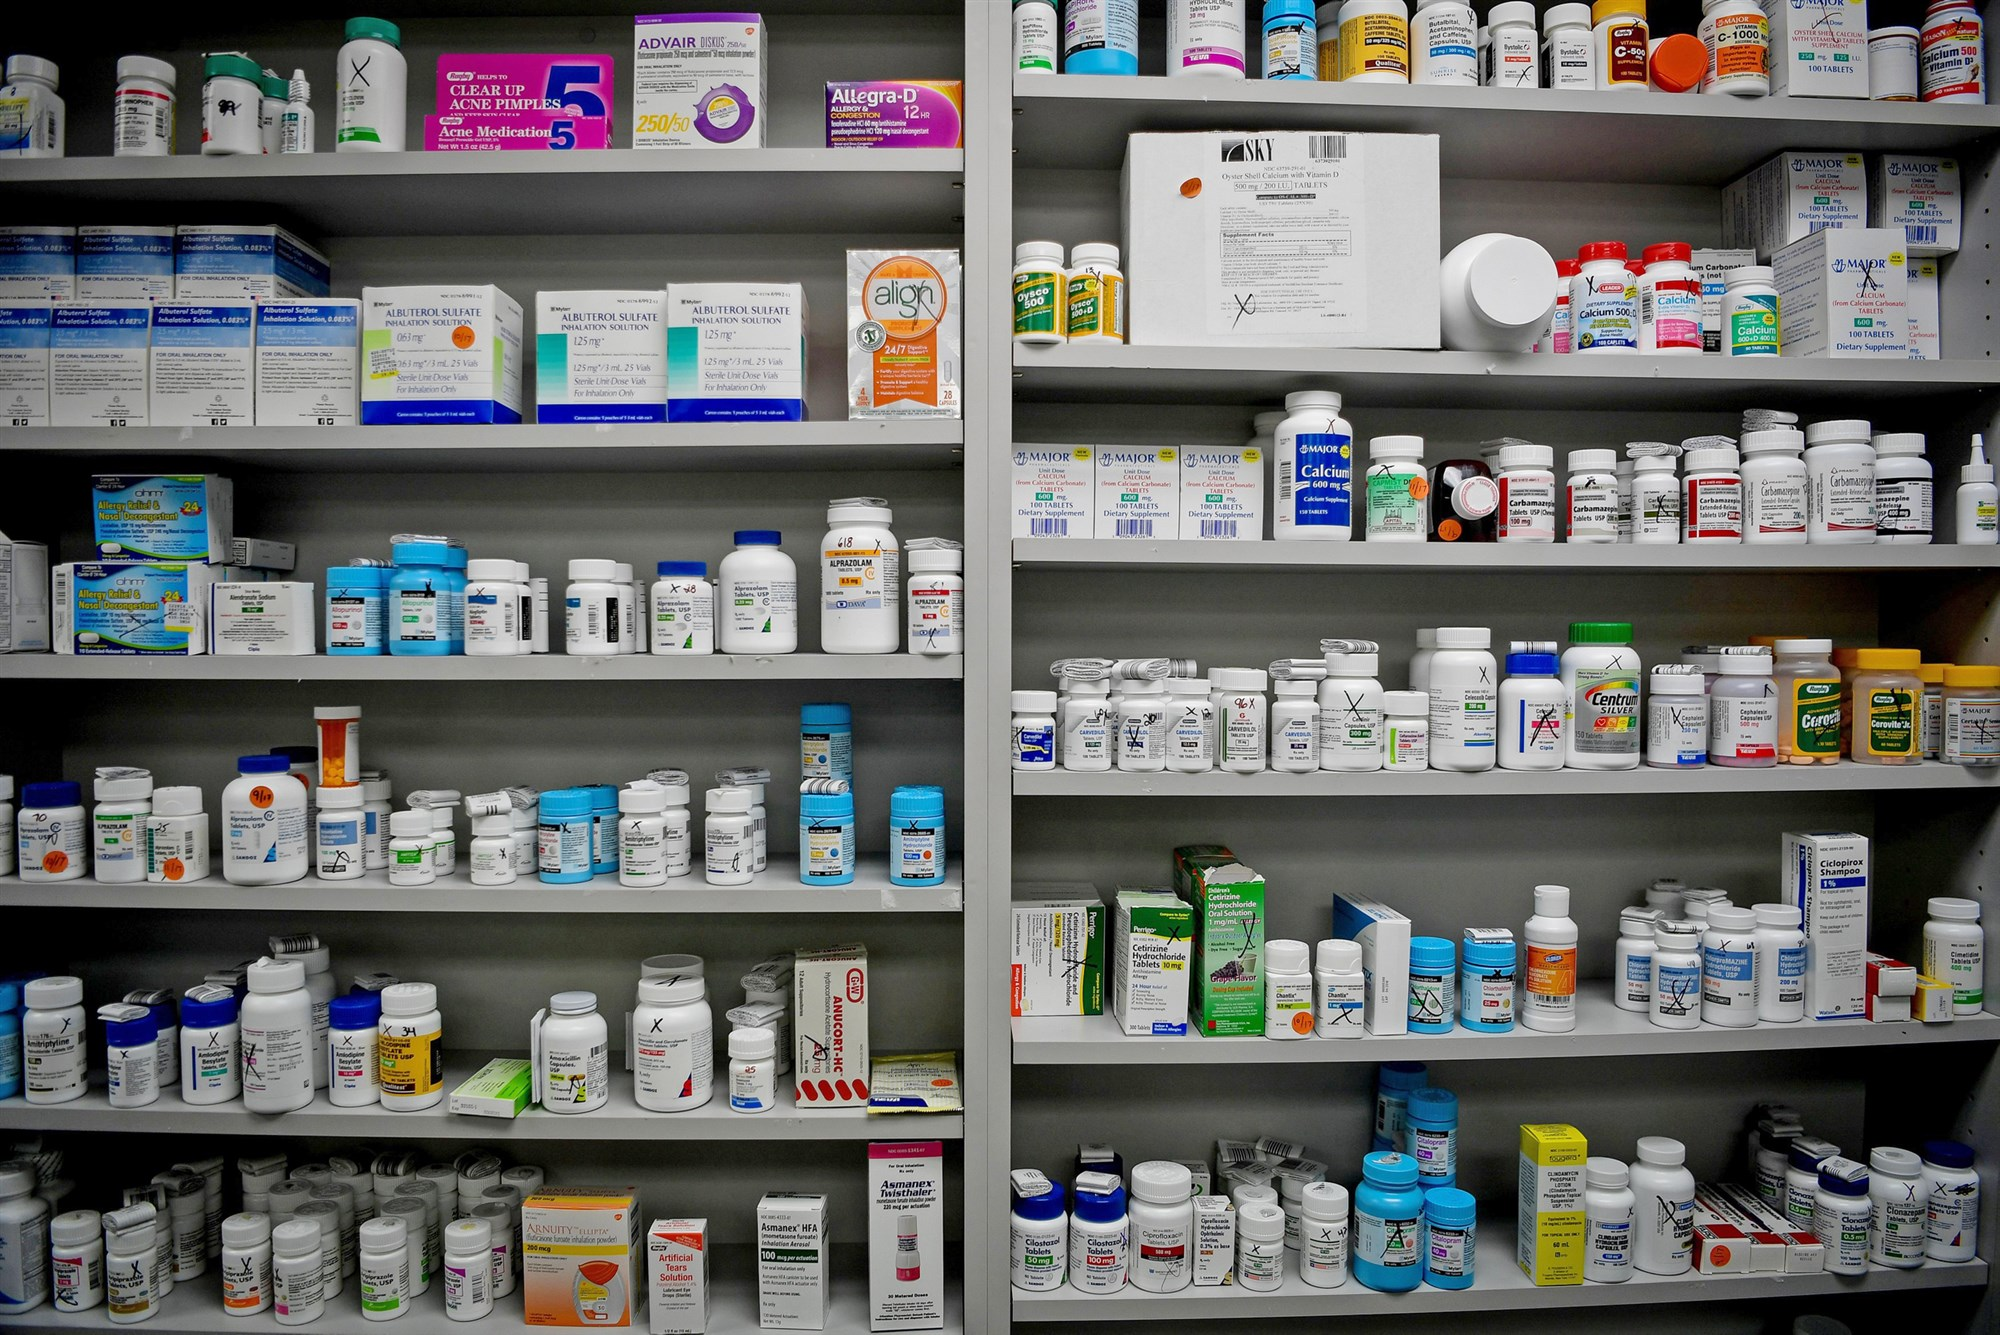 Your Helpful Hometown Pharmacy - Grass Lake is home to the managers and most of our pharmacy staff. We are here to help our friends and neighbors get well, and live healthy lives.